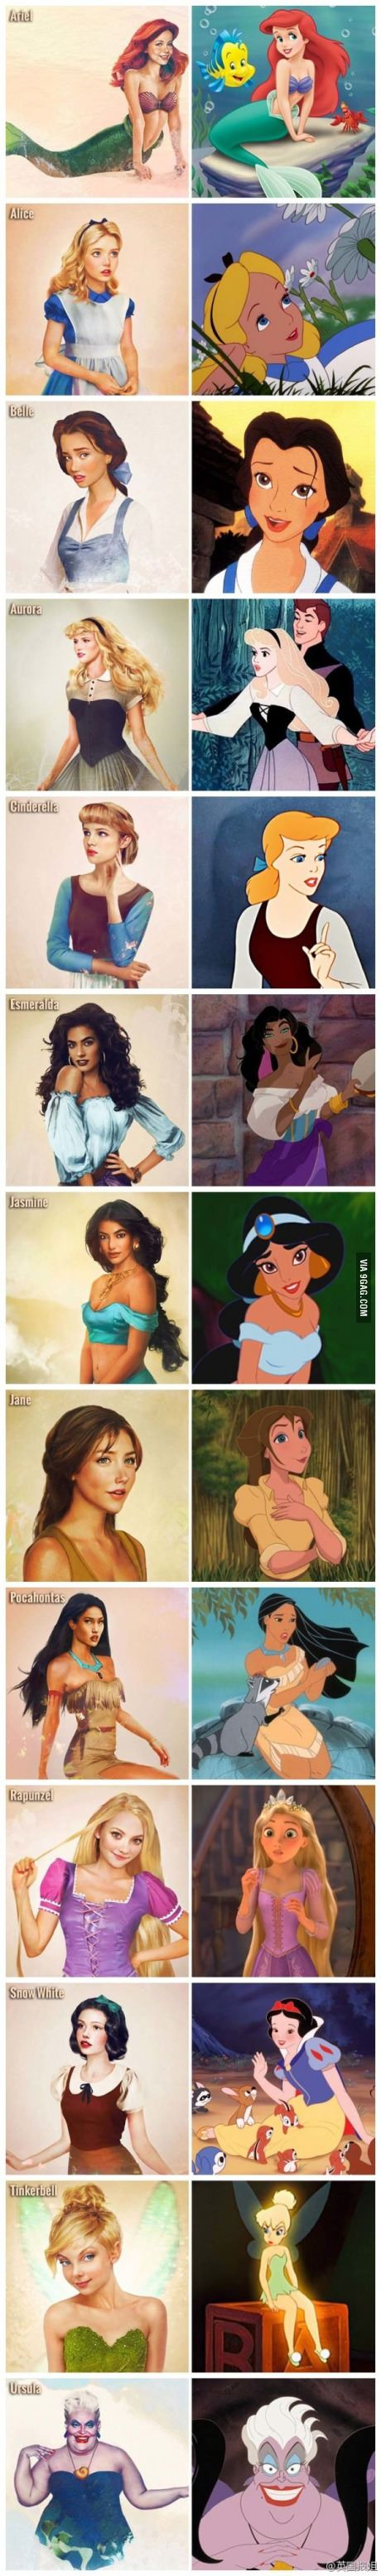 Realistic Disney characters I have a crush on. Except ursula:)